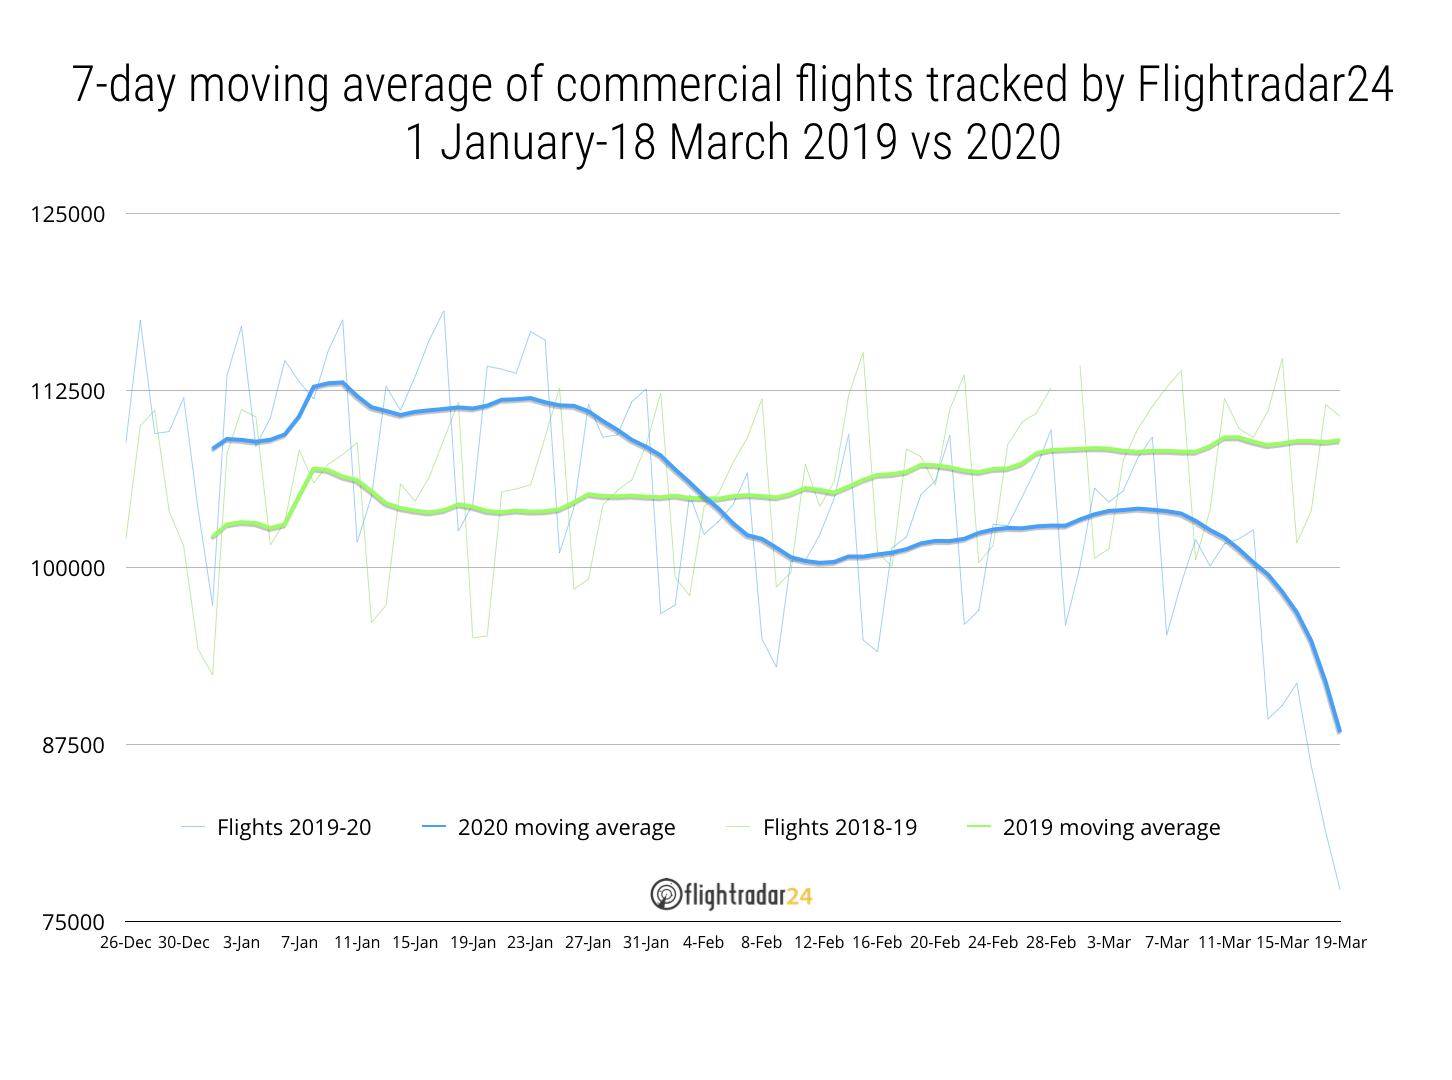 7-day moving average of commercial traffic 2019 vs 2020